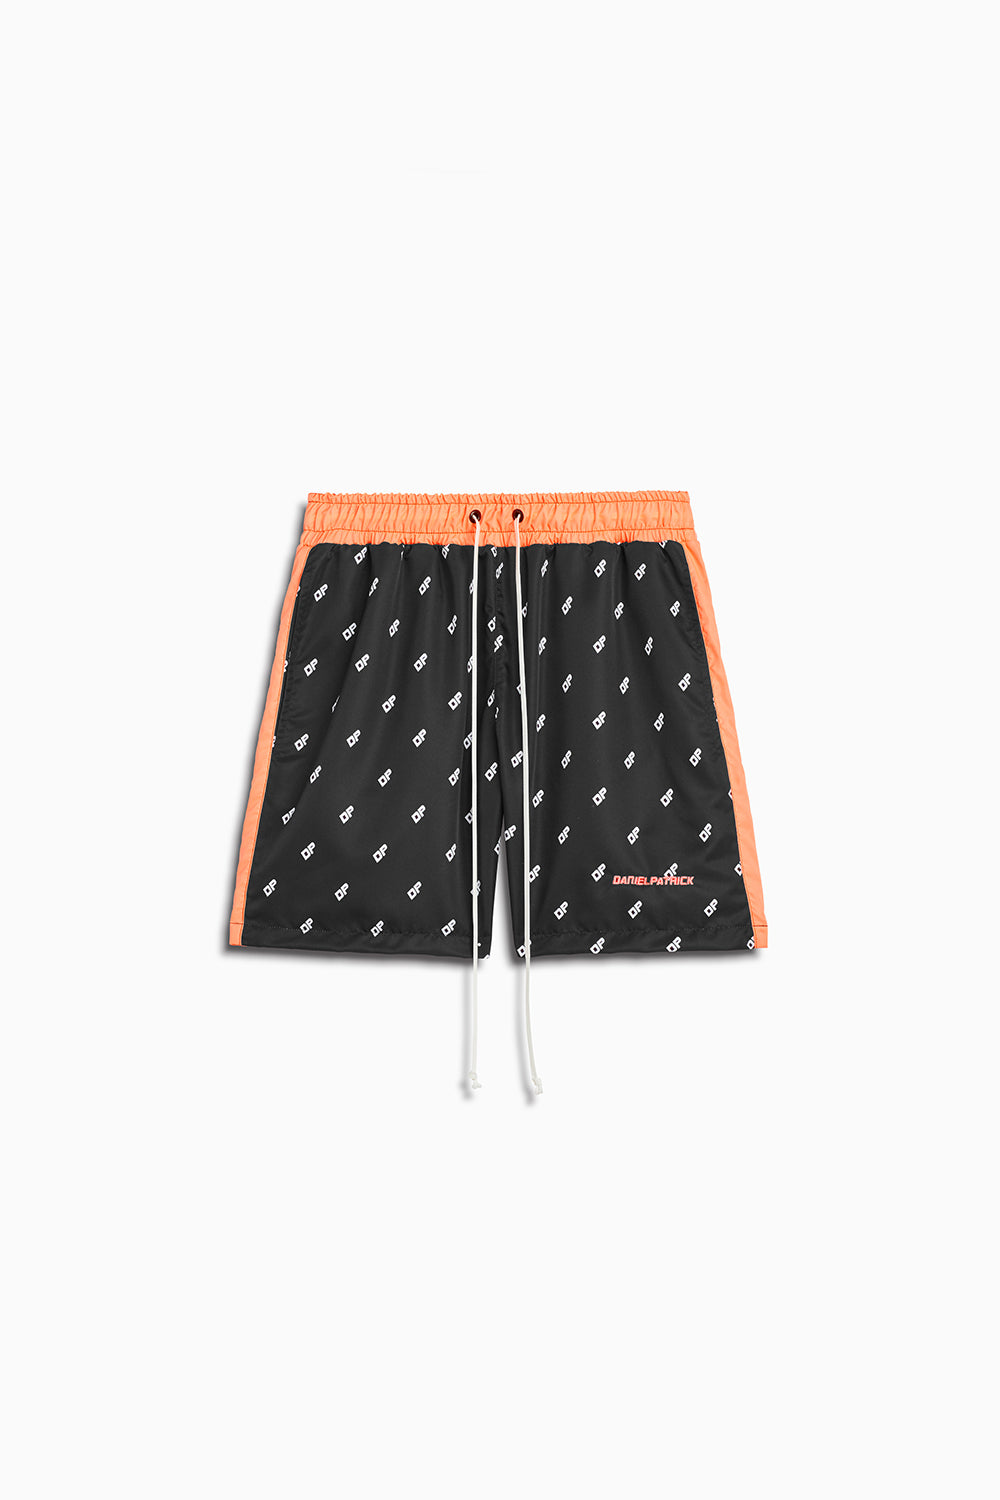 DP venice trunk in black/coral by daniel patrick